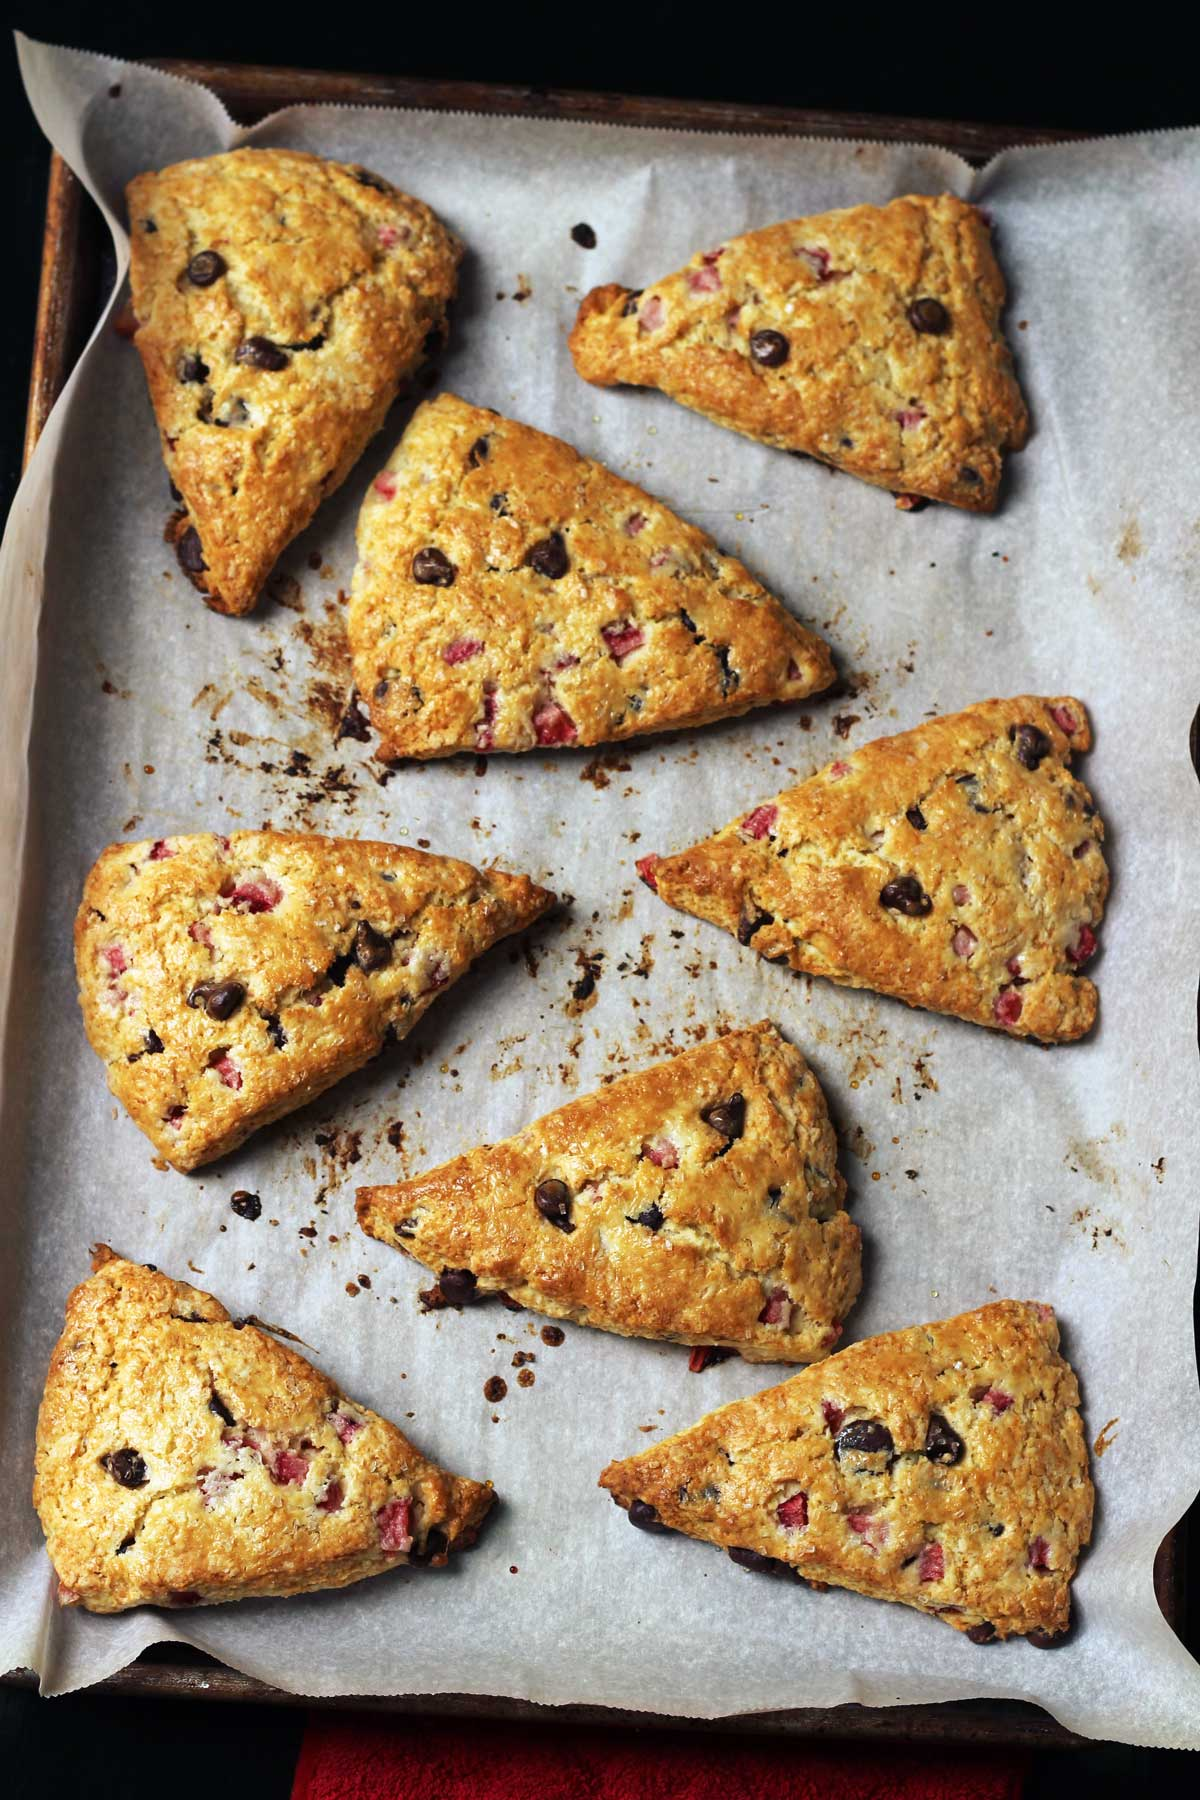 baked chocolate strawberry scones on parchment lined tray.